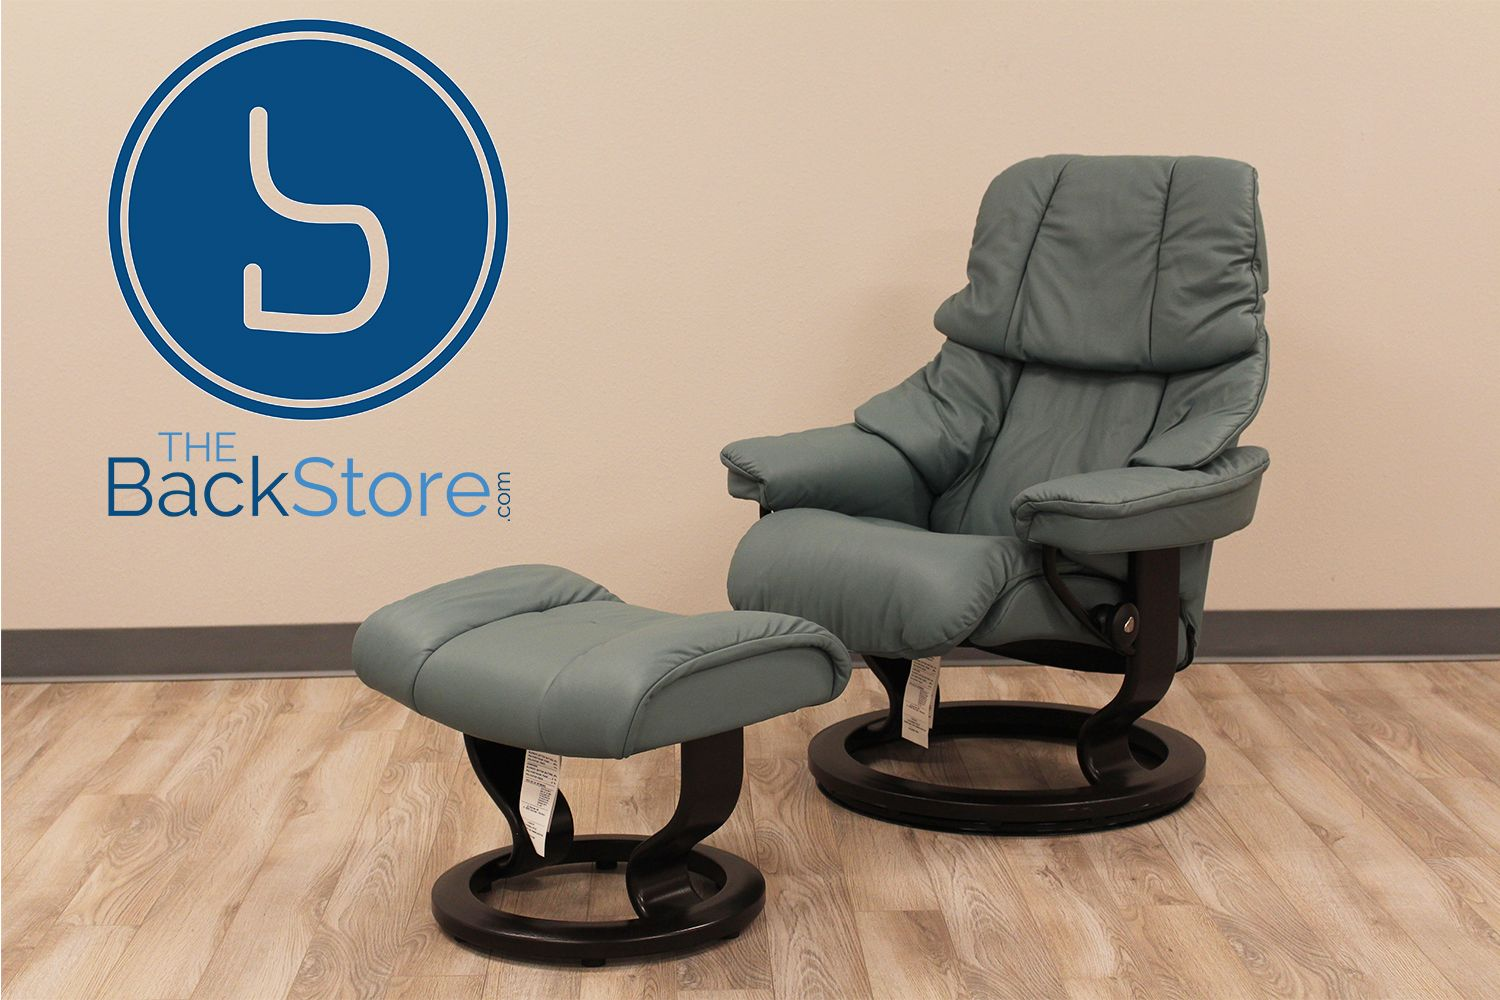 Stressless consul small chair and stool in batick leather - Stressless Tampa Small Reno Paloma Aquagreen Leather Recliner Chair And Ottoman By Ekornes Stressless Tampa Small Reno Paloma Aquagreen Leather Chairs